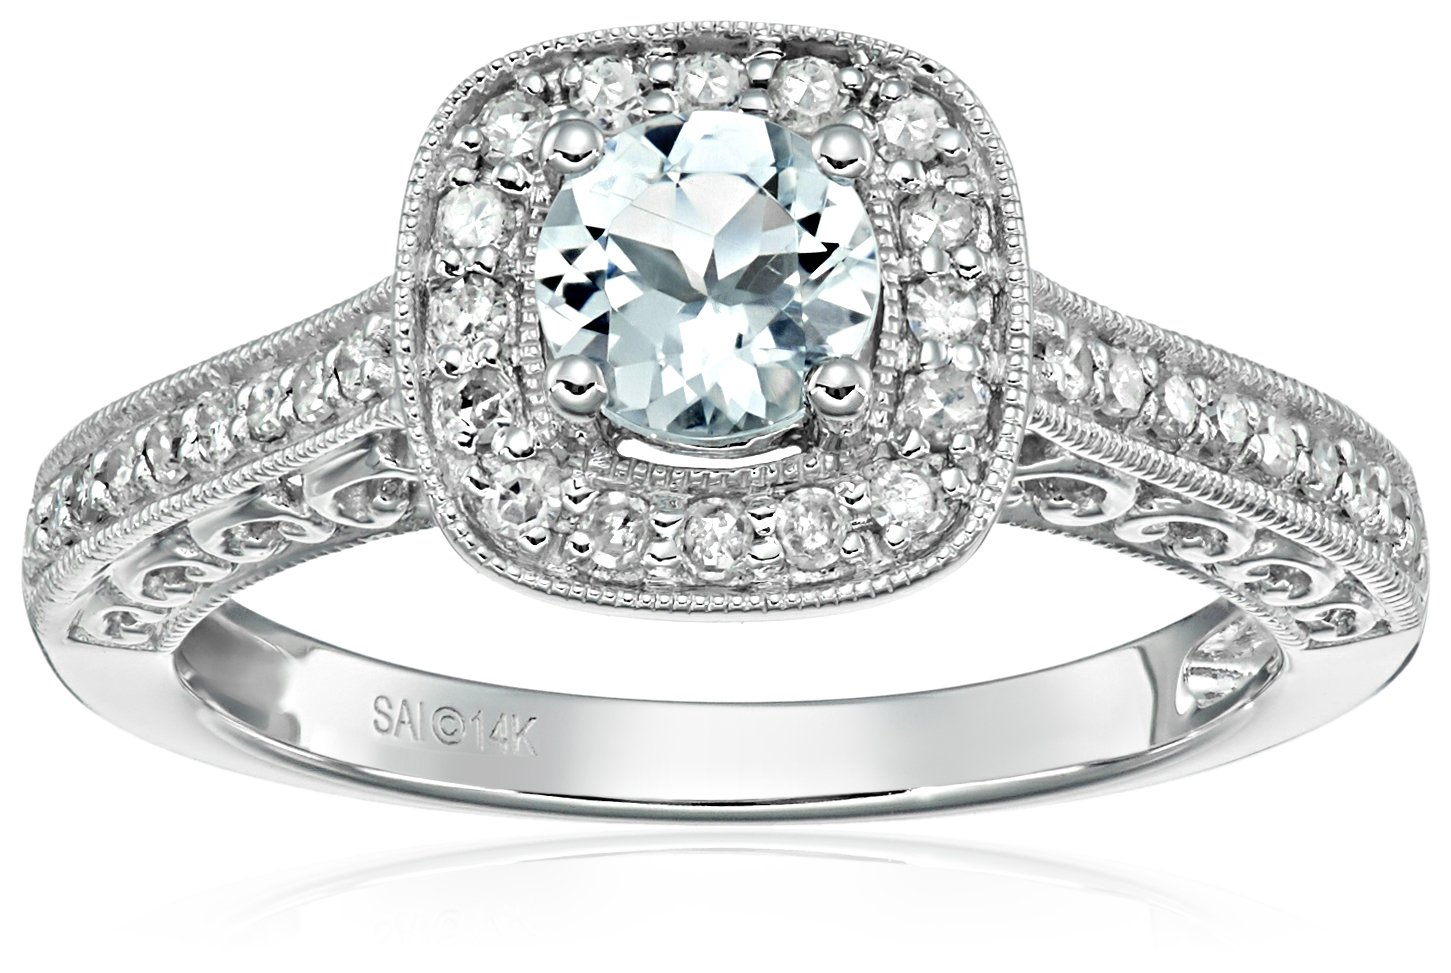 14k White Gold Aquamarine and Diamond Ring (1/4 cttw, H-I Color, I2-I3 Clarity), Size 8 by Amazon Collection (Image #1)